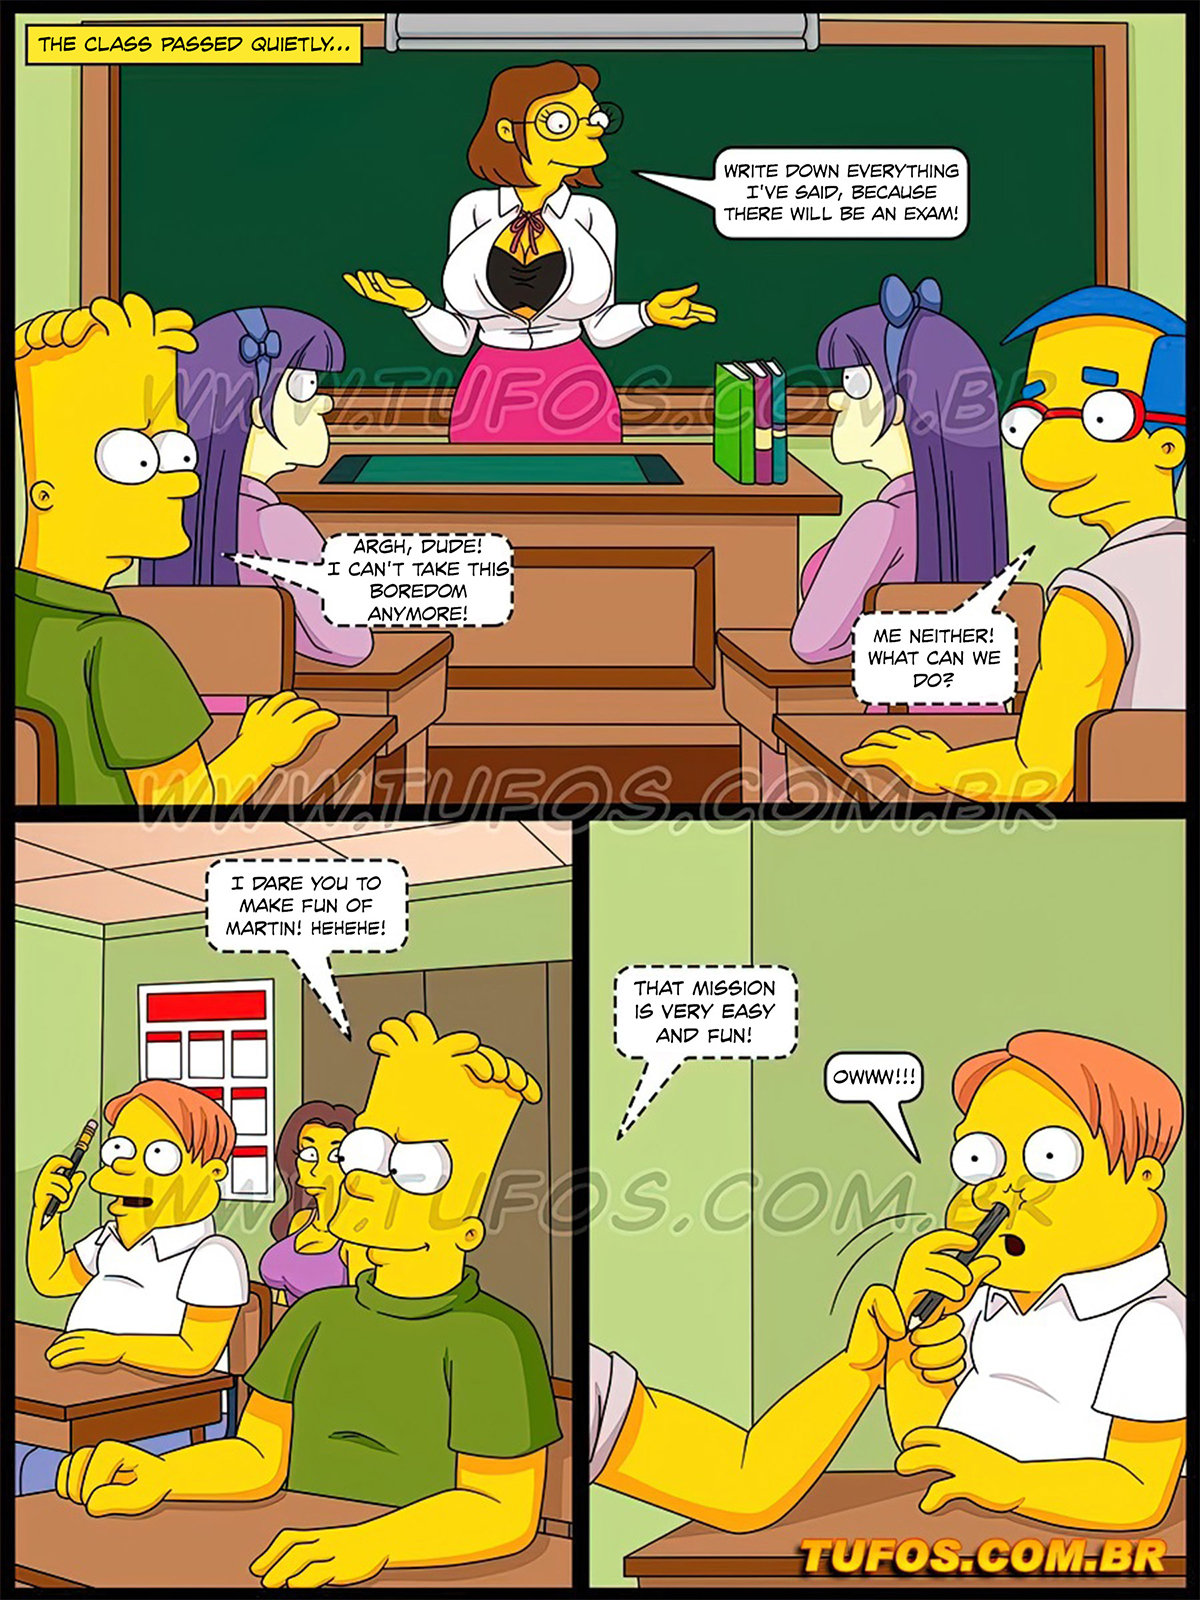 02 4 - The Simpsons 32 - Of saints, they have nothing